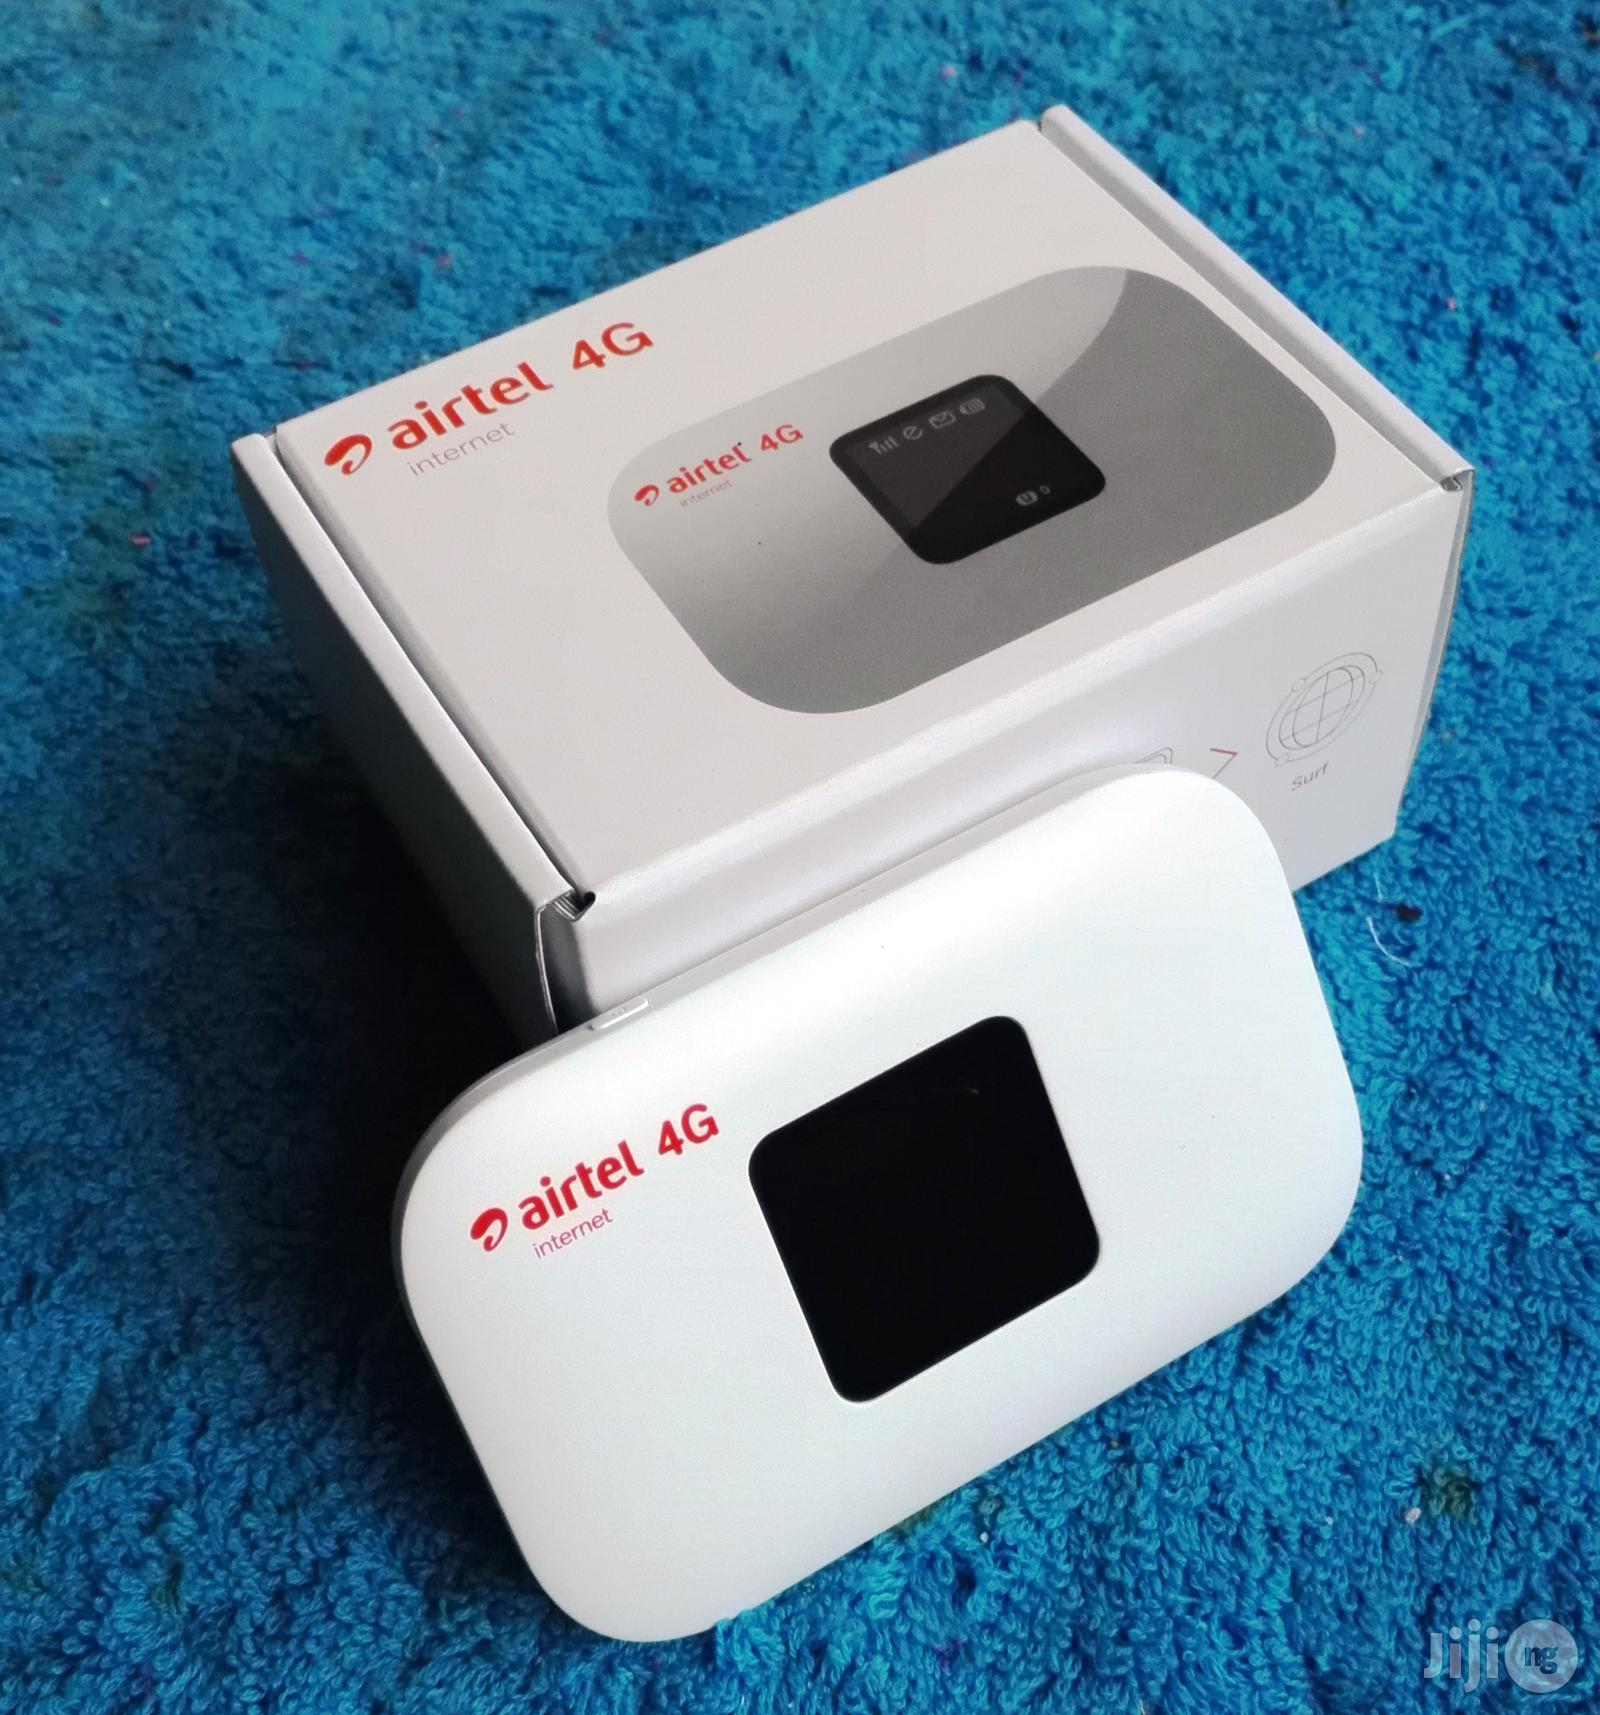 Airtel 4G MiFi: Airtel MiFi Validity And Subscription Codes